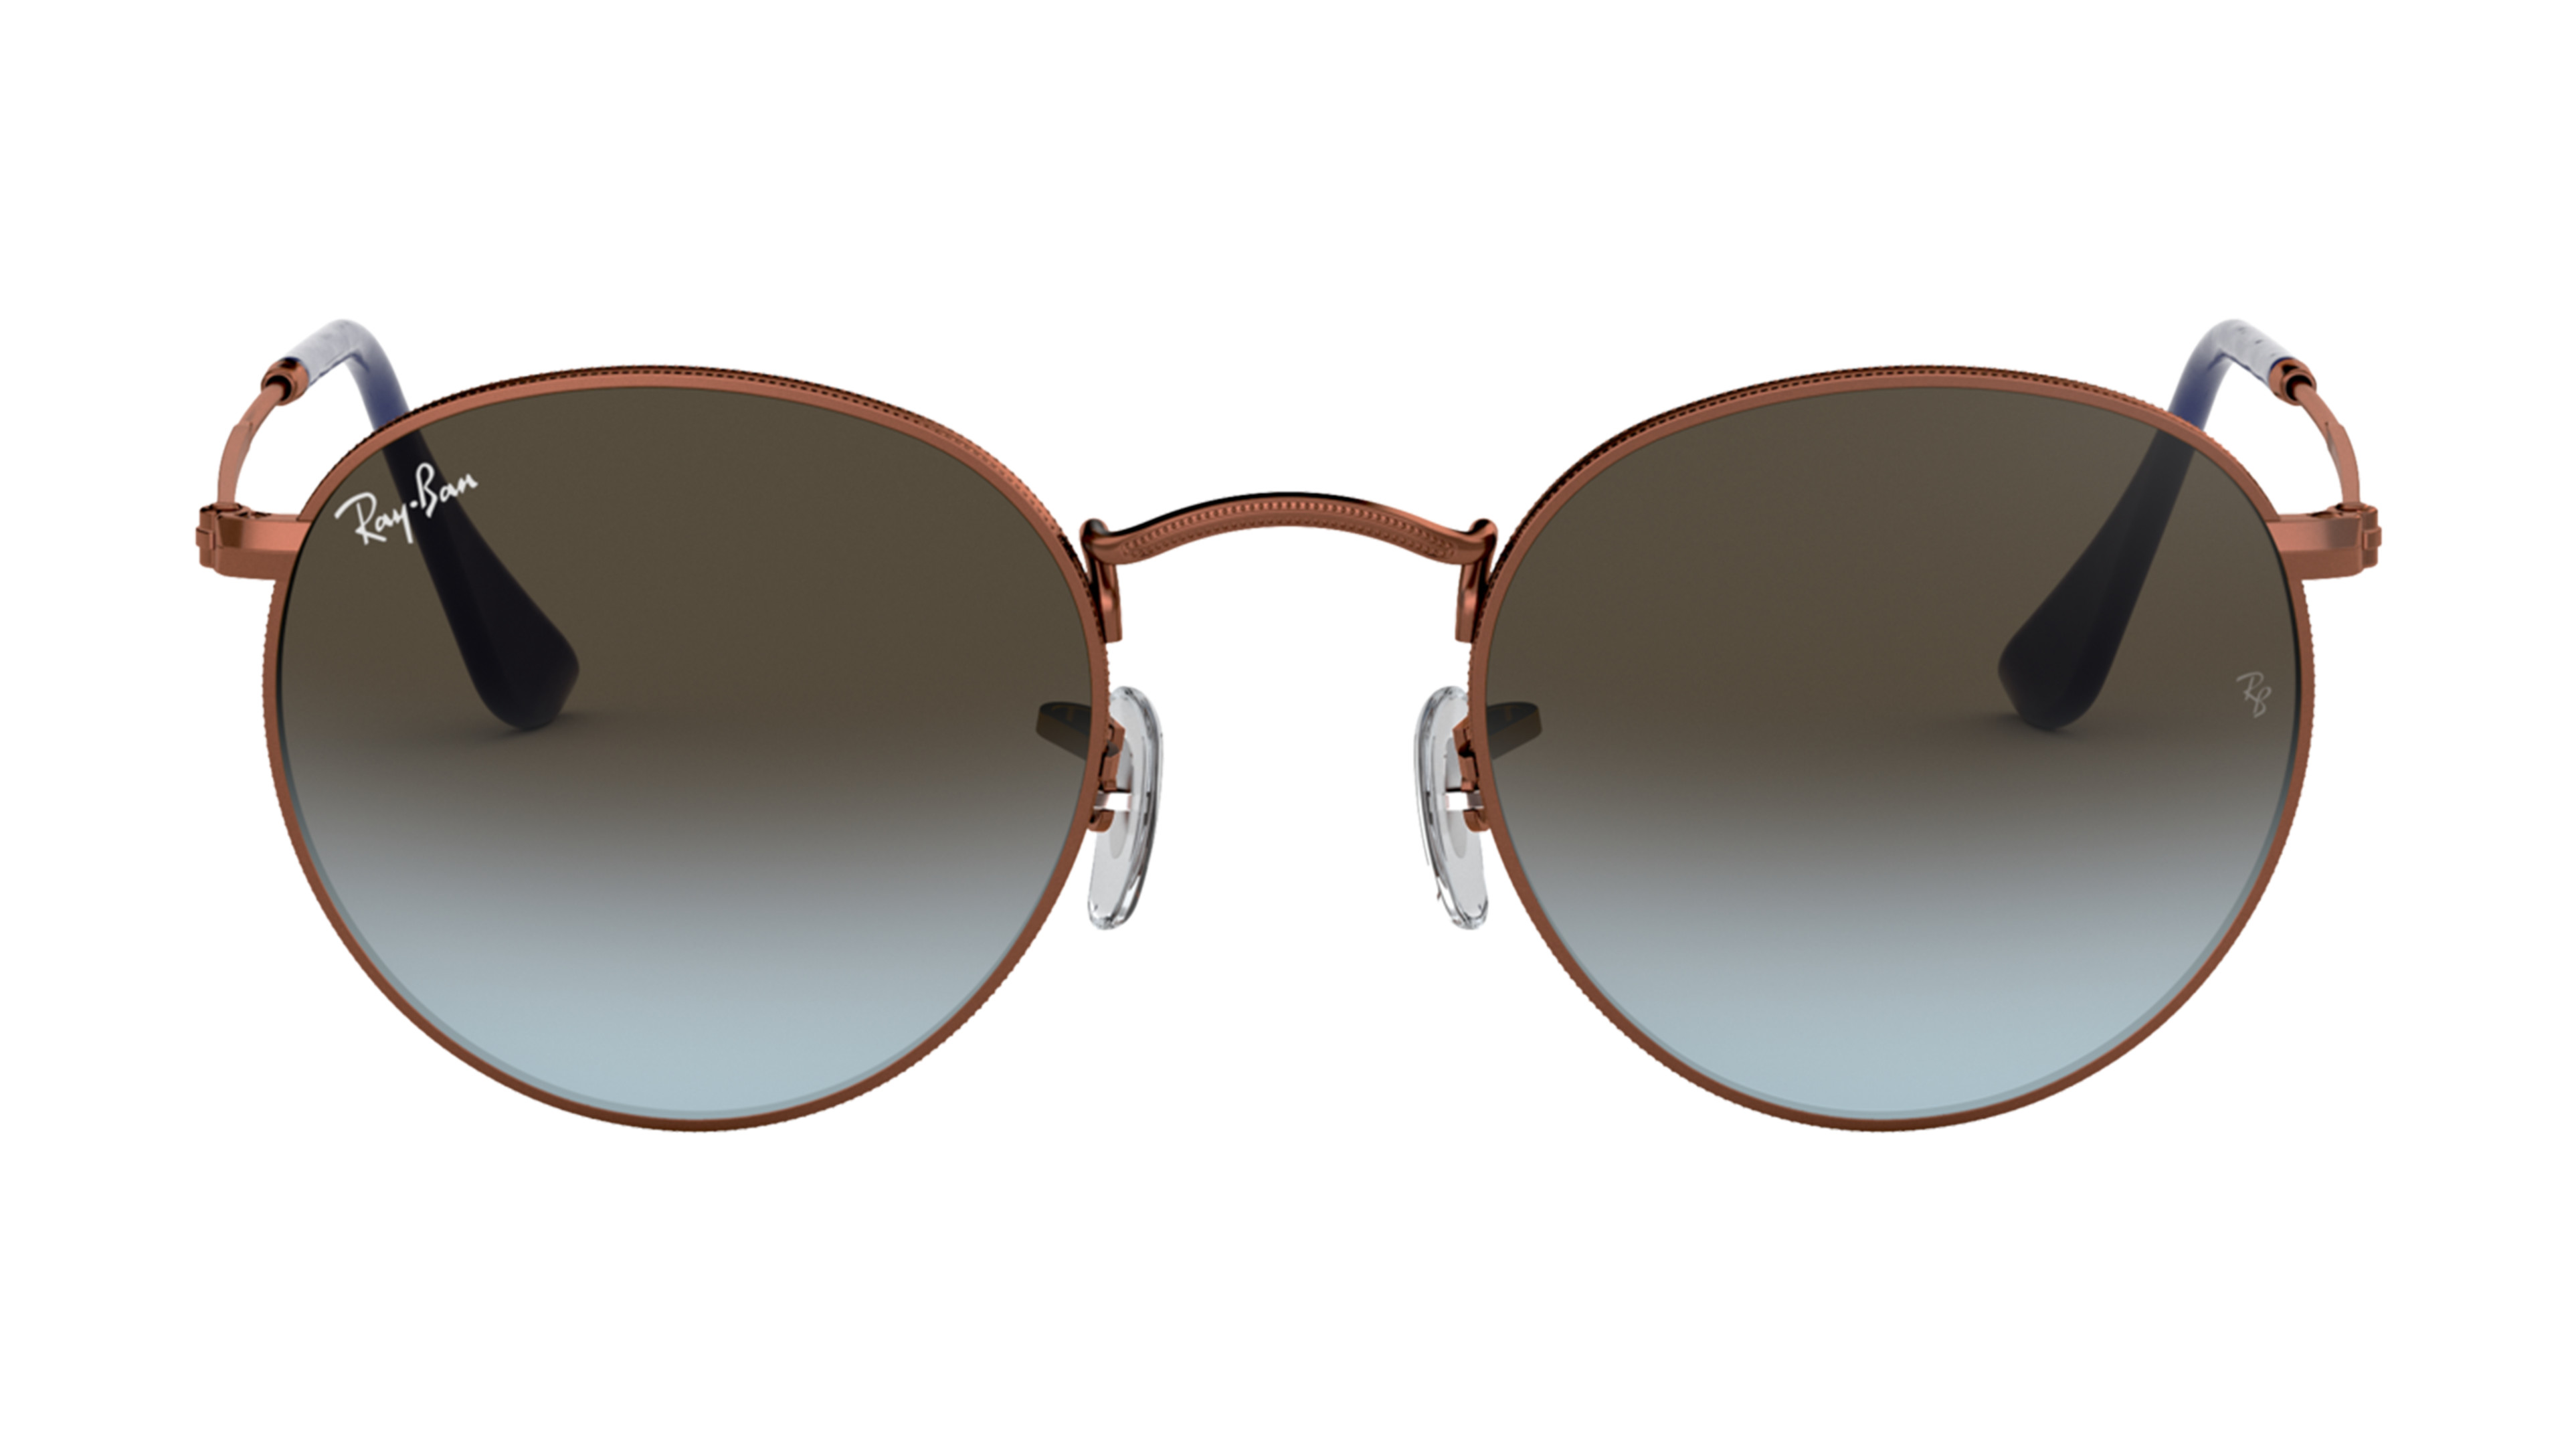 8053672684377-front-Ray-Ban-0RB3447-900396